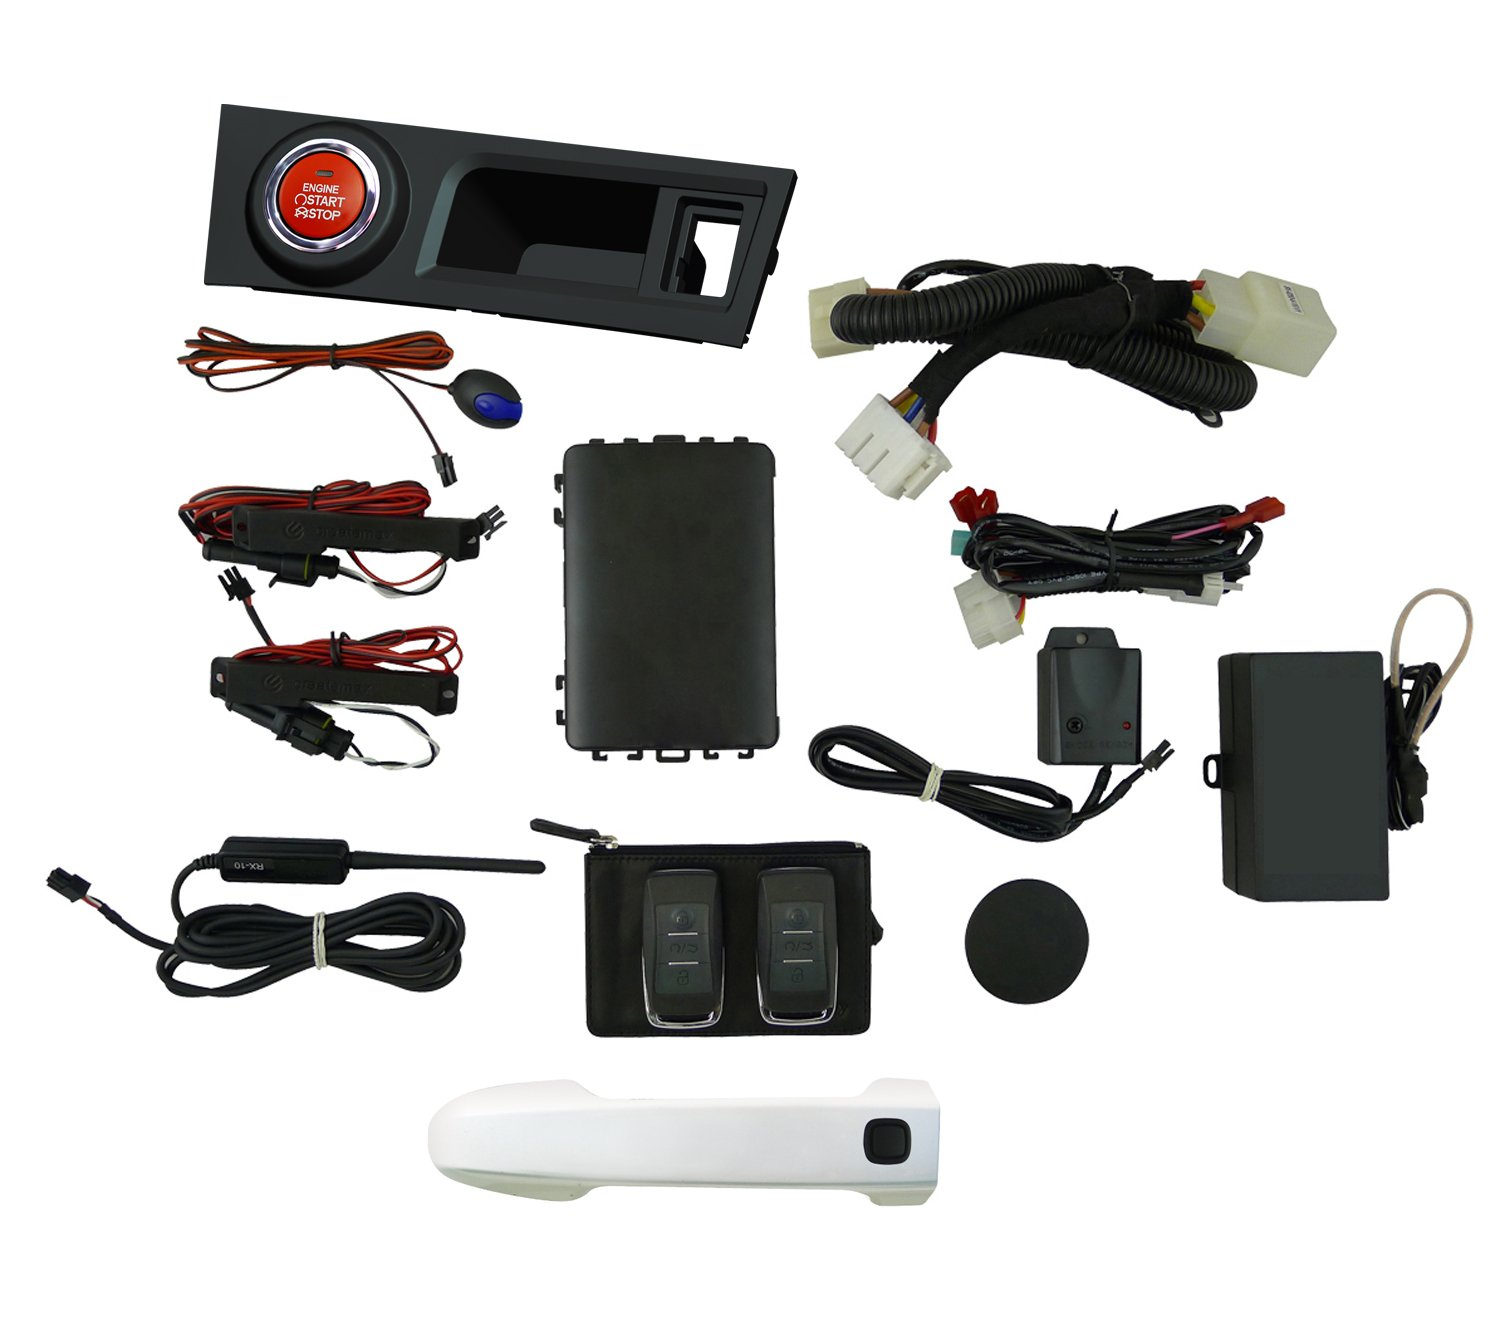 Easygo Am Frs 37j Smart Key Remote Start And Alarm Nissan Titan Install 10 System With Whiteout Drivers Door Handle For Scion Fr S Automotive